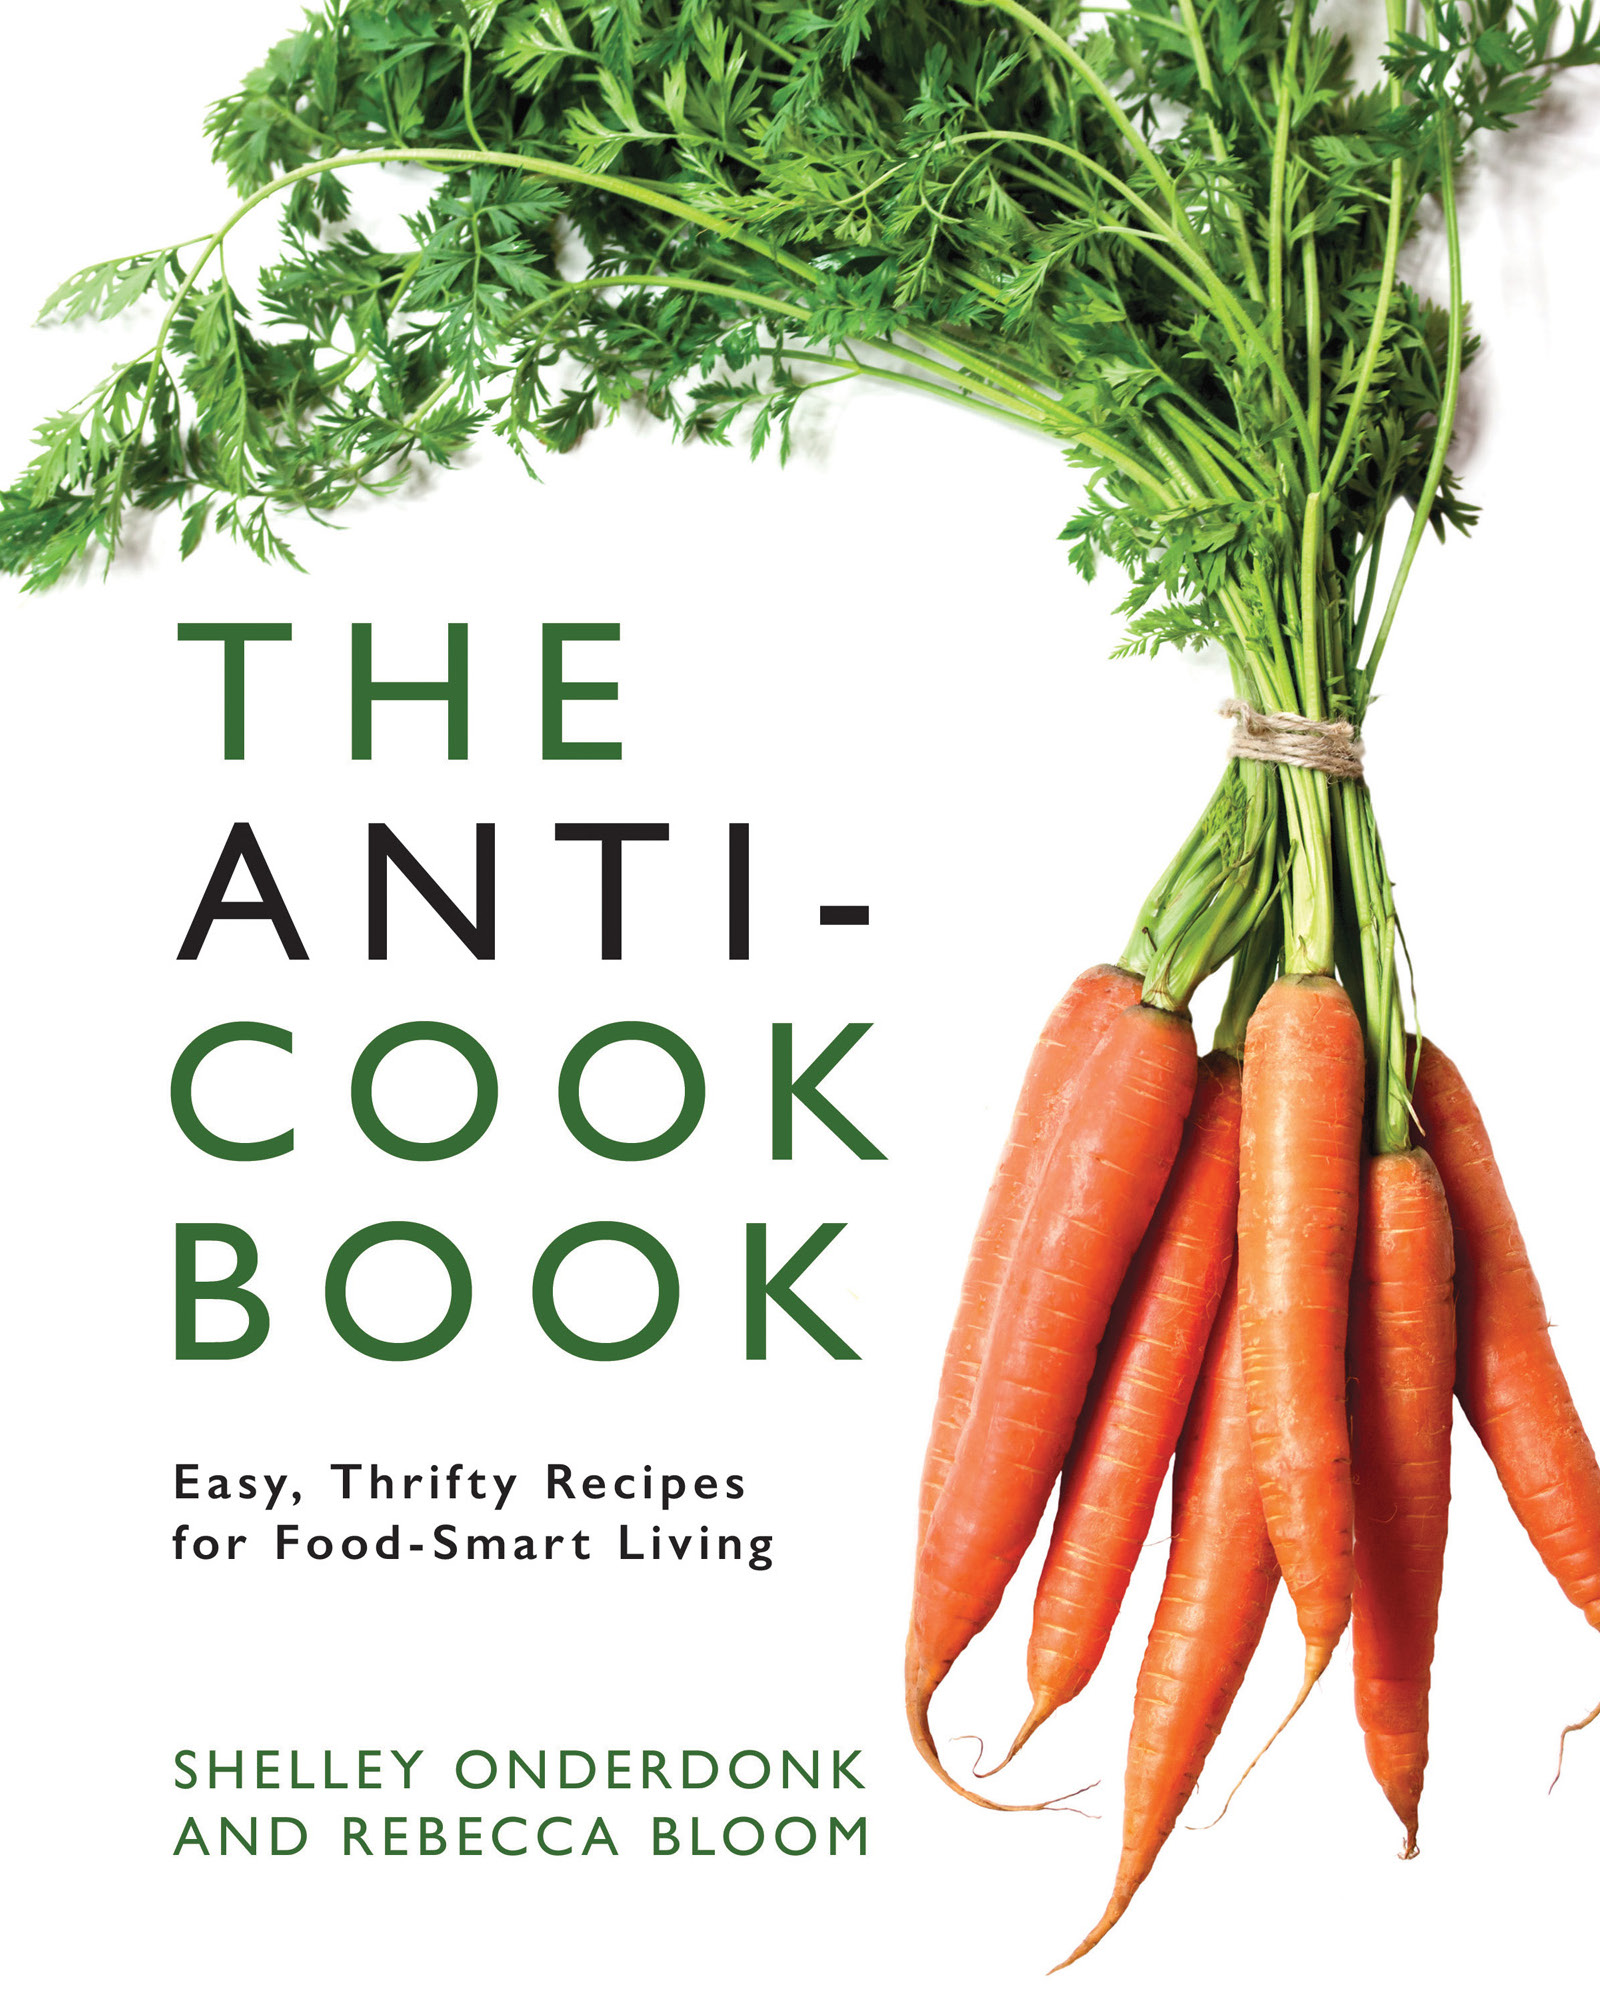 Cookbook Launch: The Anti-Cookbook: Easy, Thrifty Recipes for Food-Smart Living by Shelley Onderdonk & Rebecca Bloom